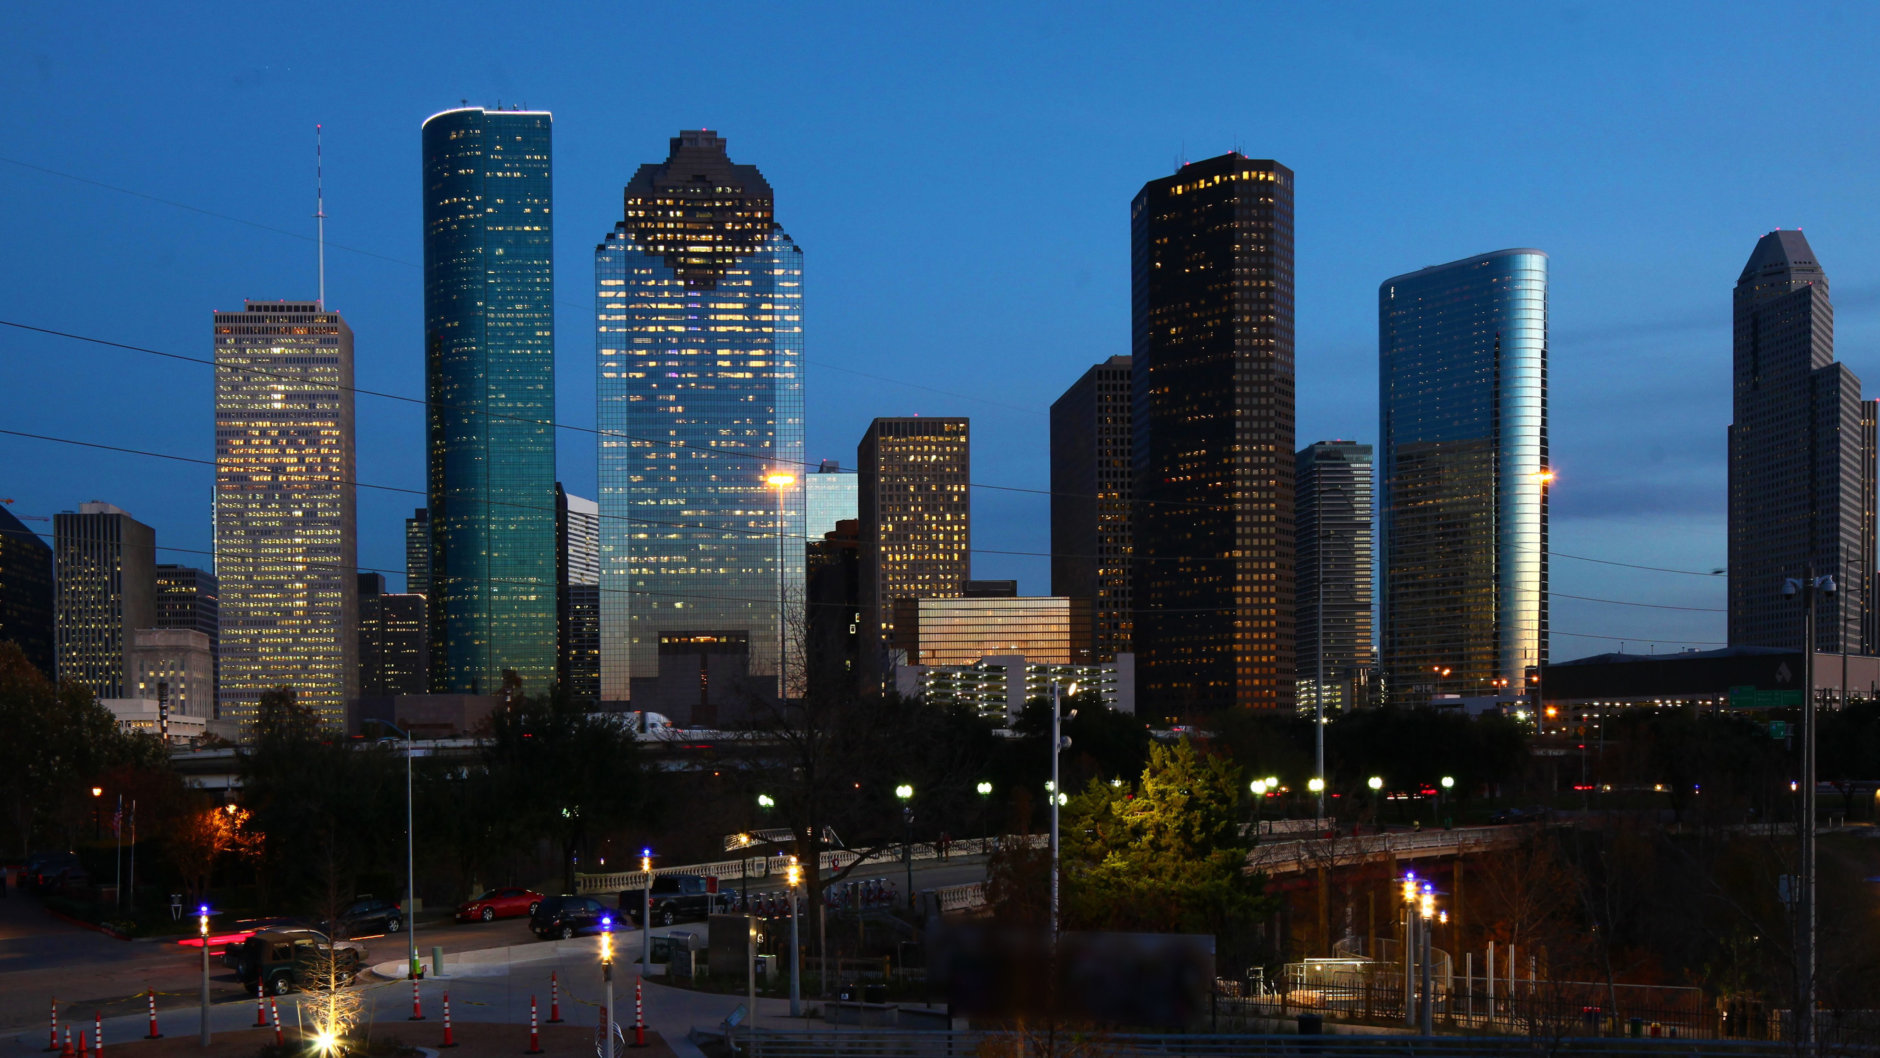 A View of Houston, Texas city center at night